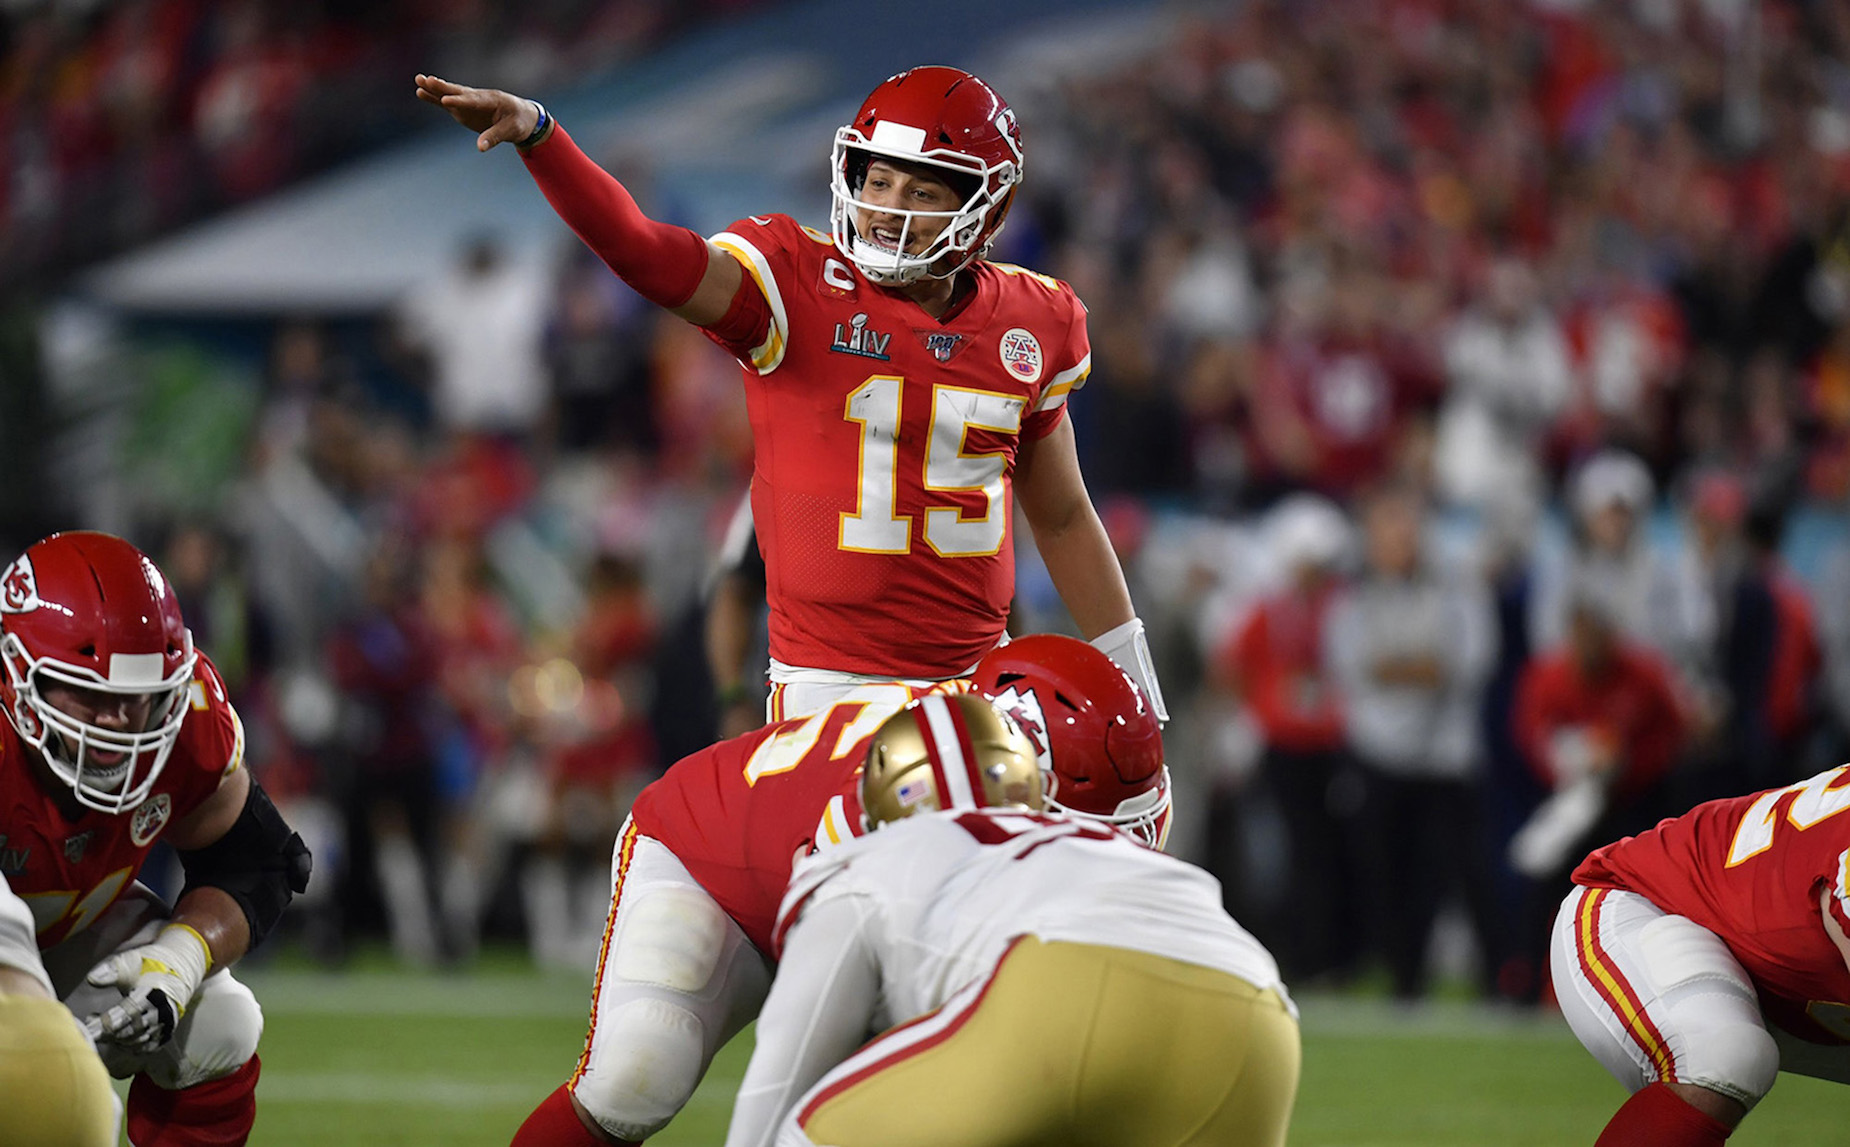 Patrick Mahomes will be following in Colin Kaepernick's footsteps and using his celebrity status for the greater good.